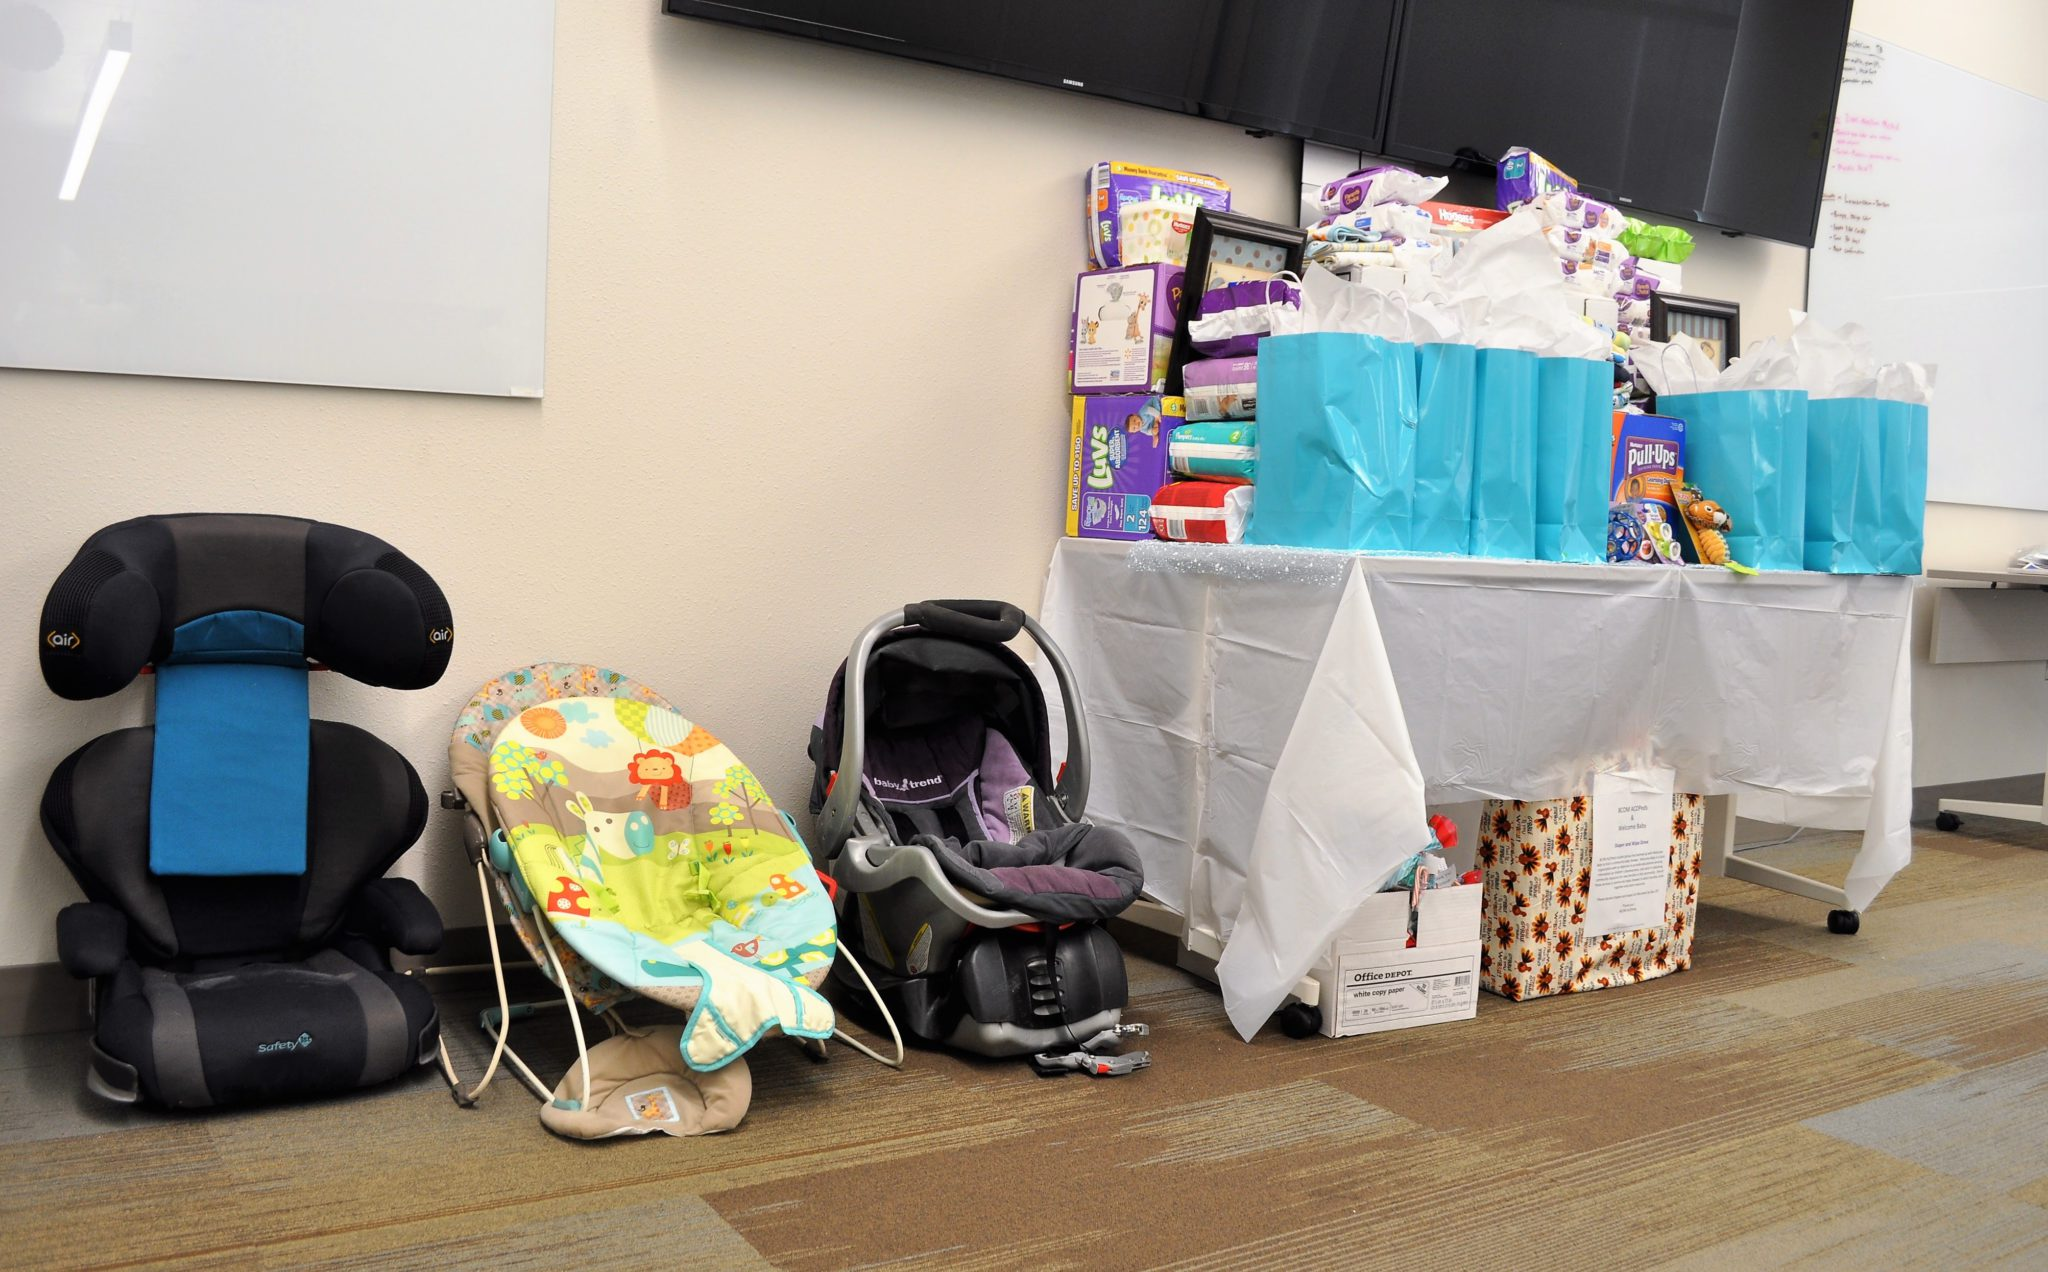 uncategorized comments off on bcom acop hosts community baby shower